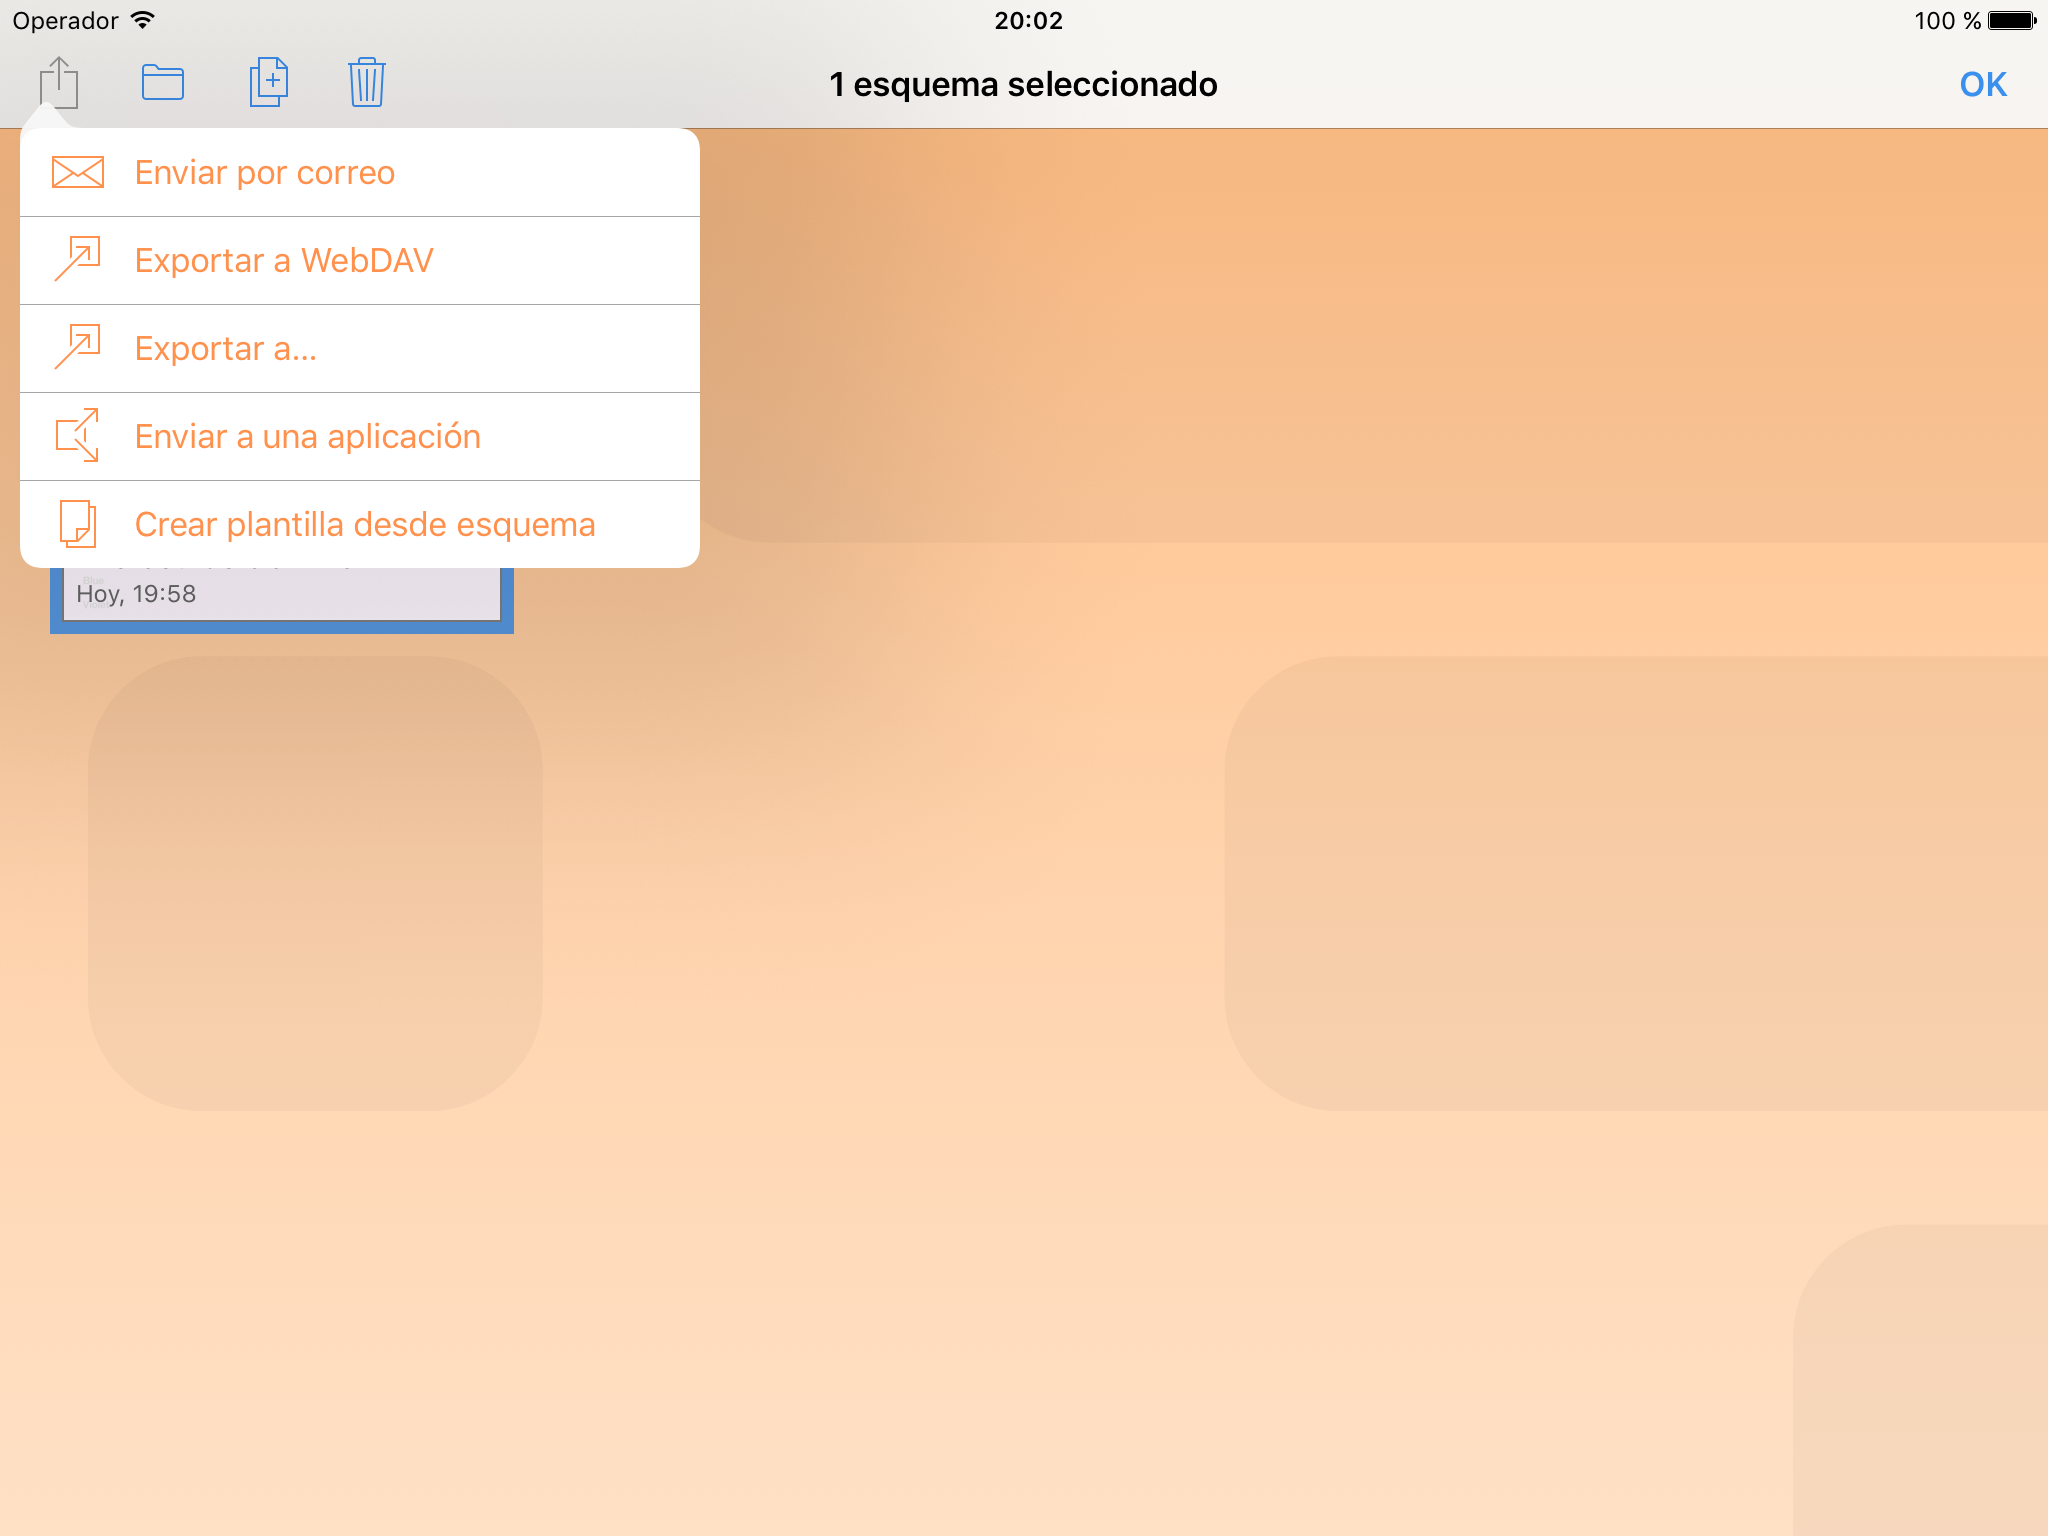 OmniOutliner 2.4 for iOS User Manual - The Omni Group